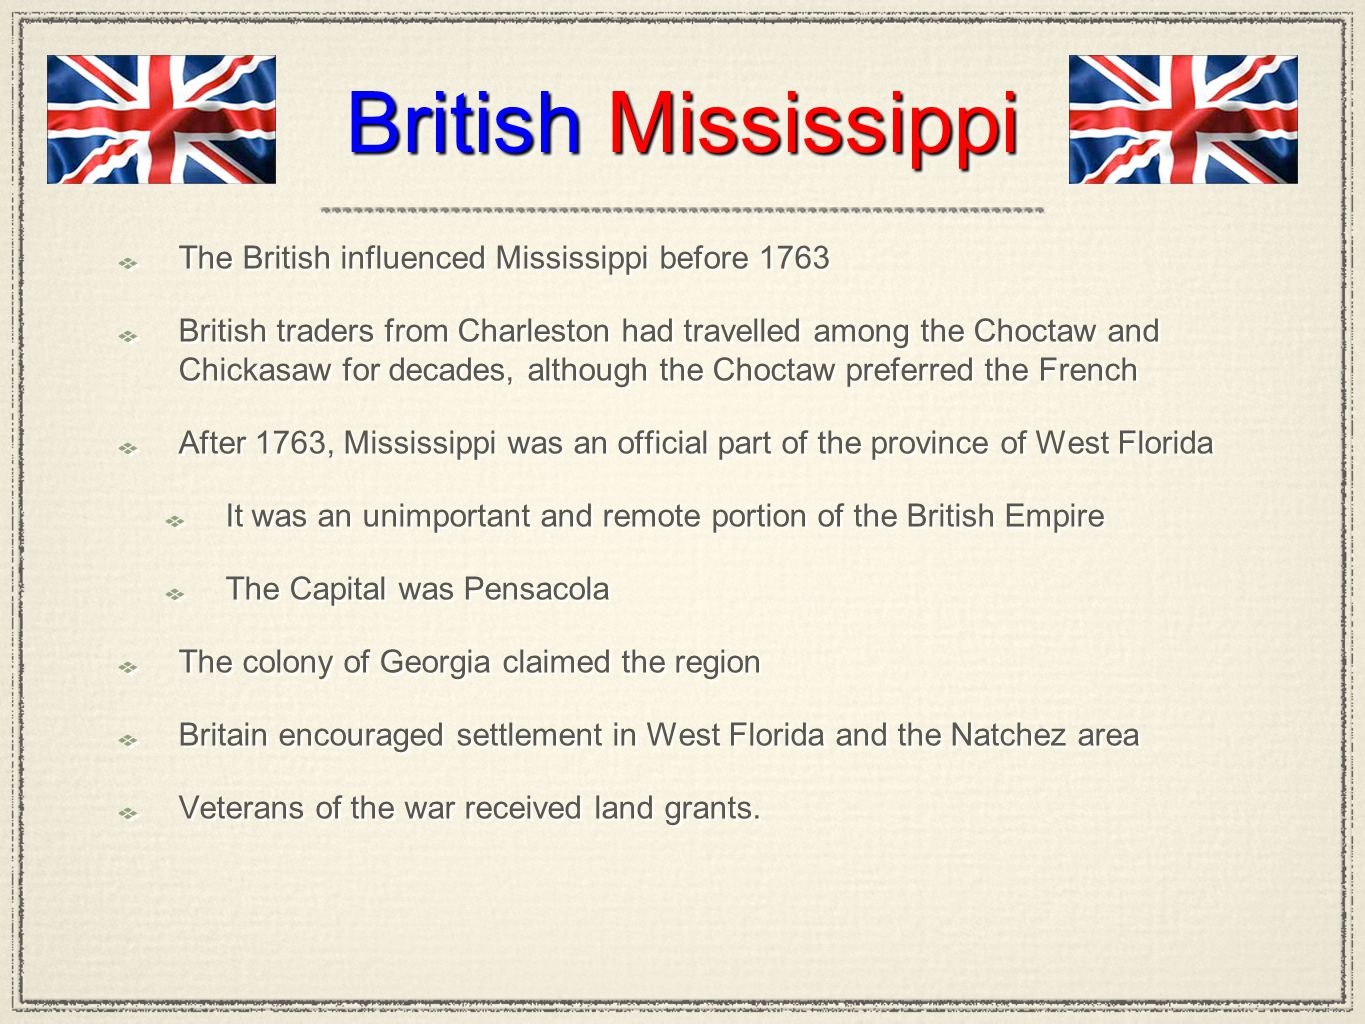 British Mississippi The British influenced Mississippi before 1763